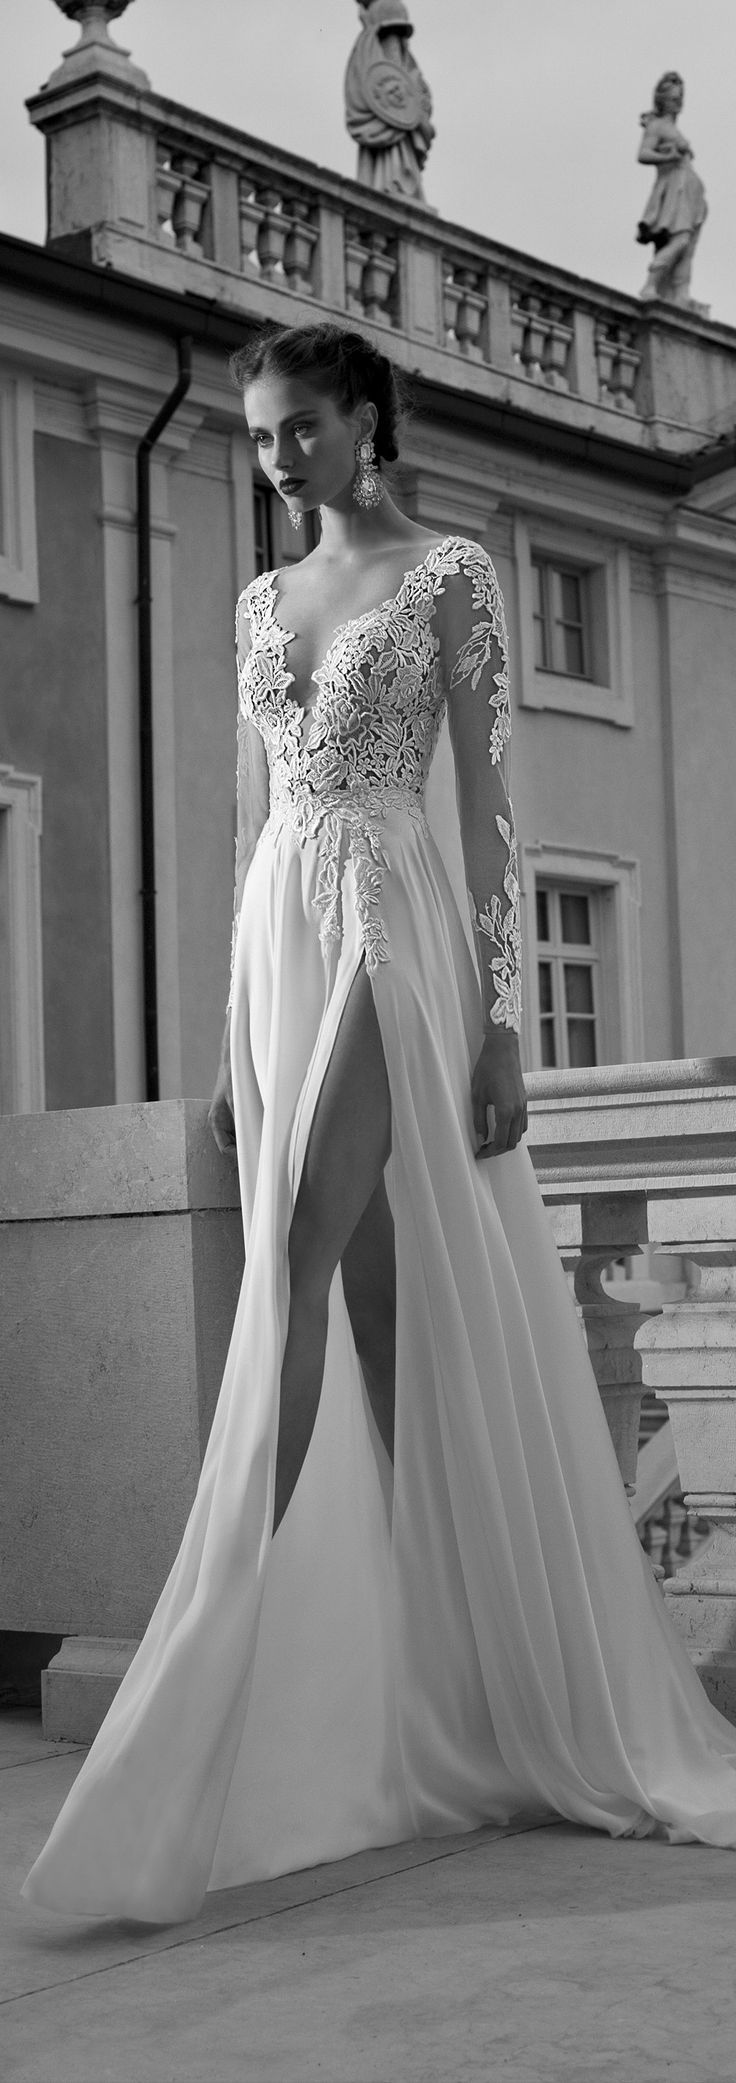 fairness  wedding dresses designer ellie saab monique lhuillier 2016